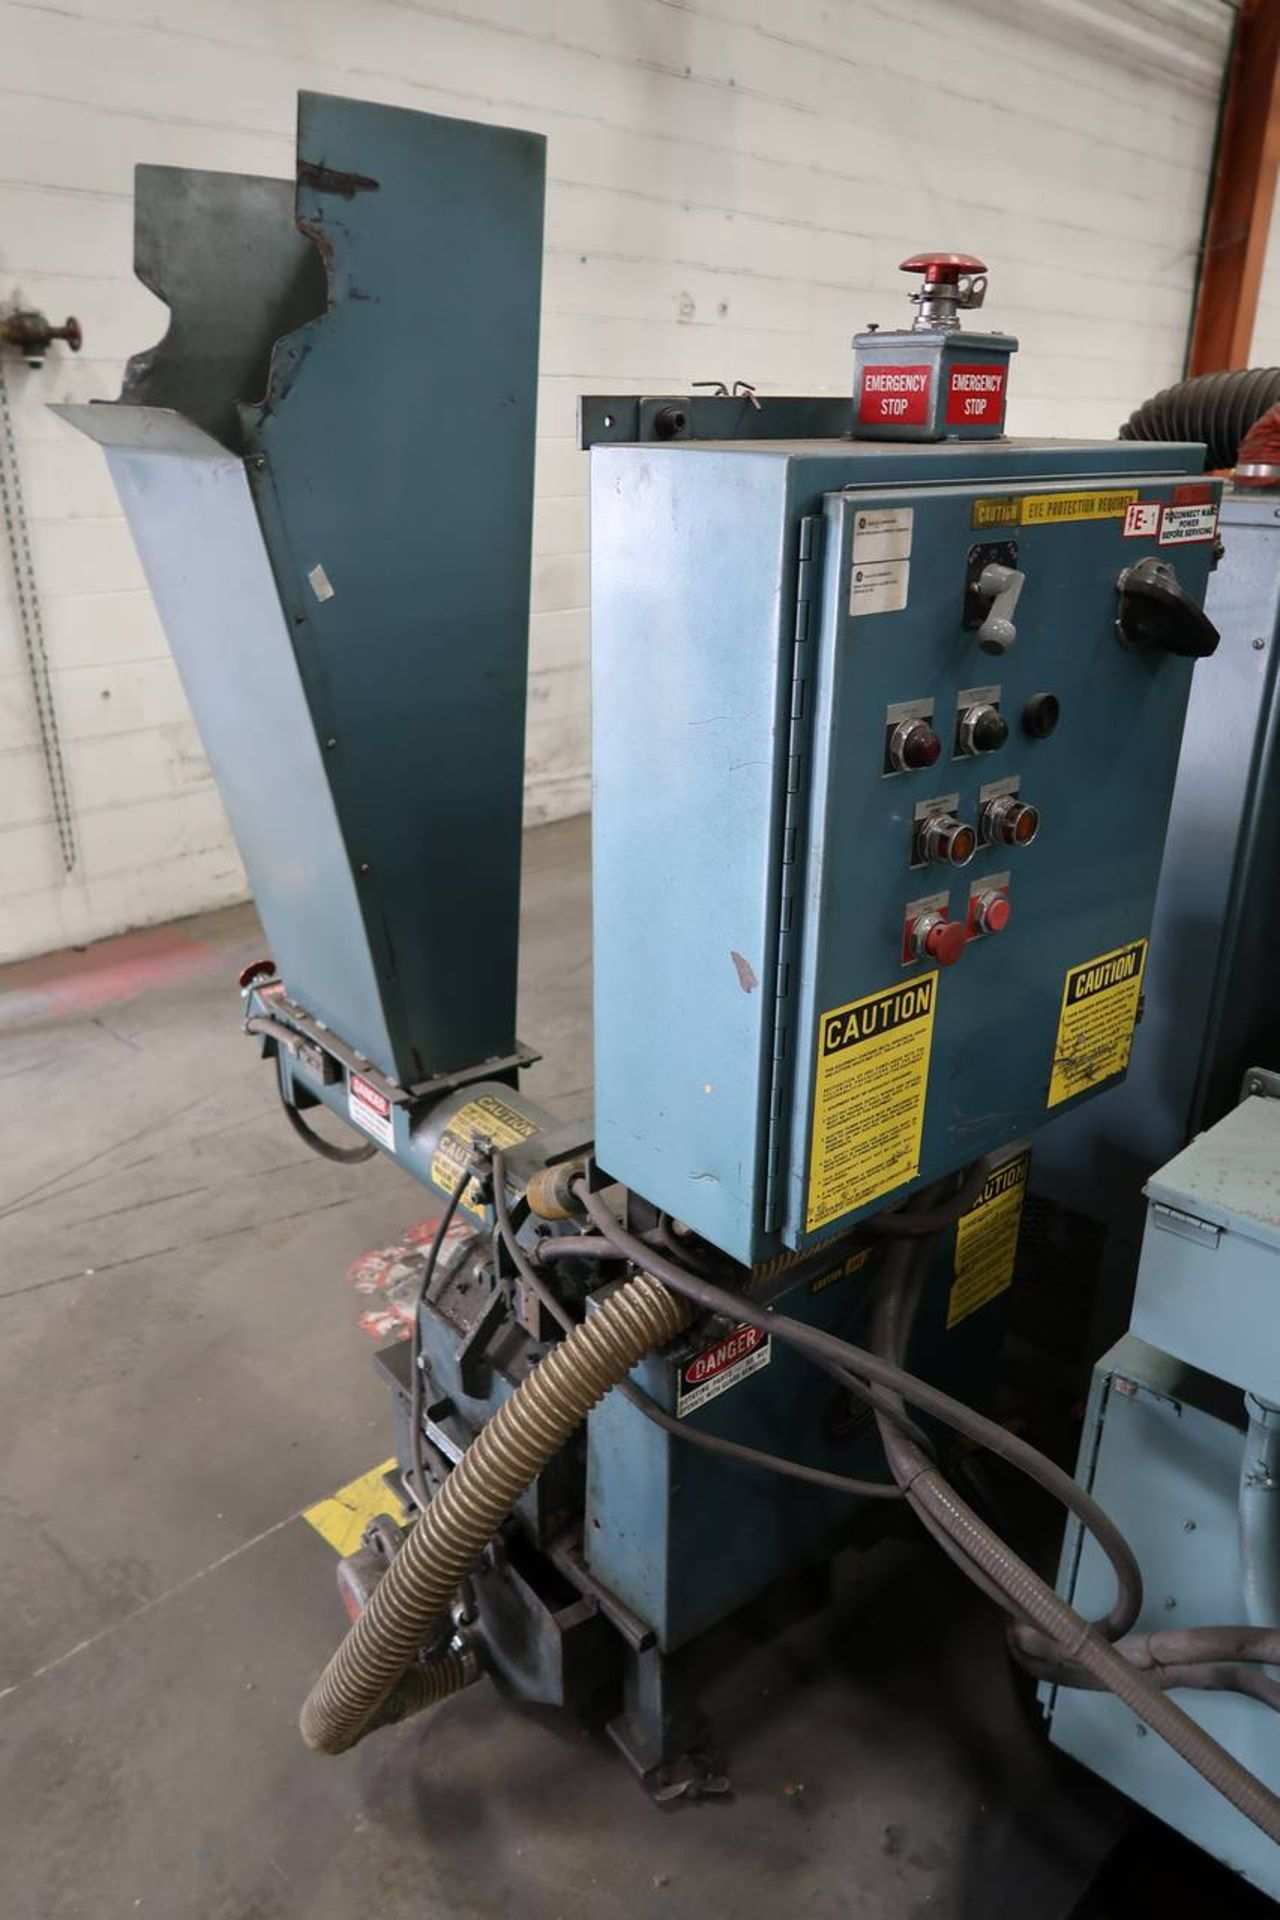 1986 HPM 400-TP-20 400-Ton Thermo Plastic Injection Molding Press - Image 25 of 40